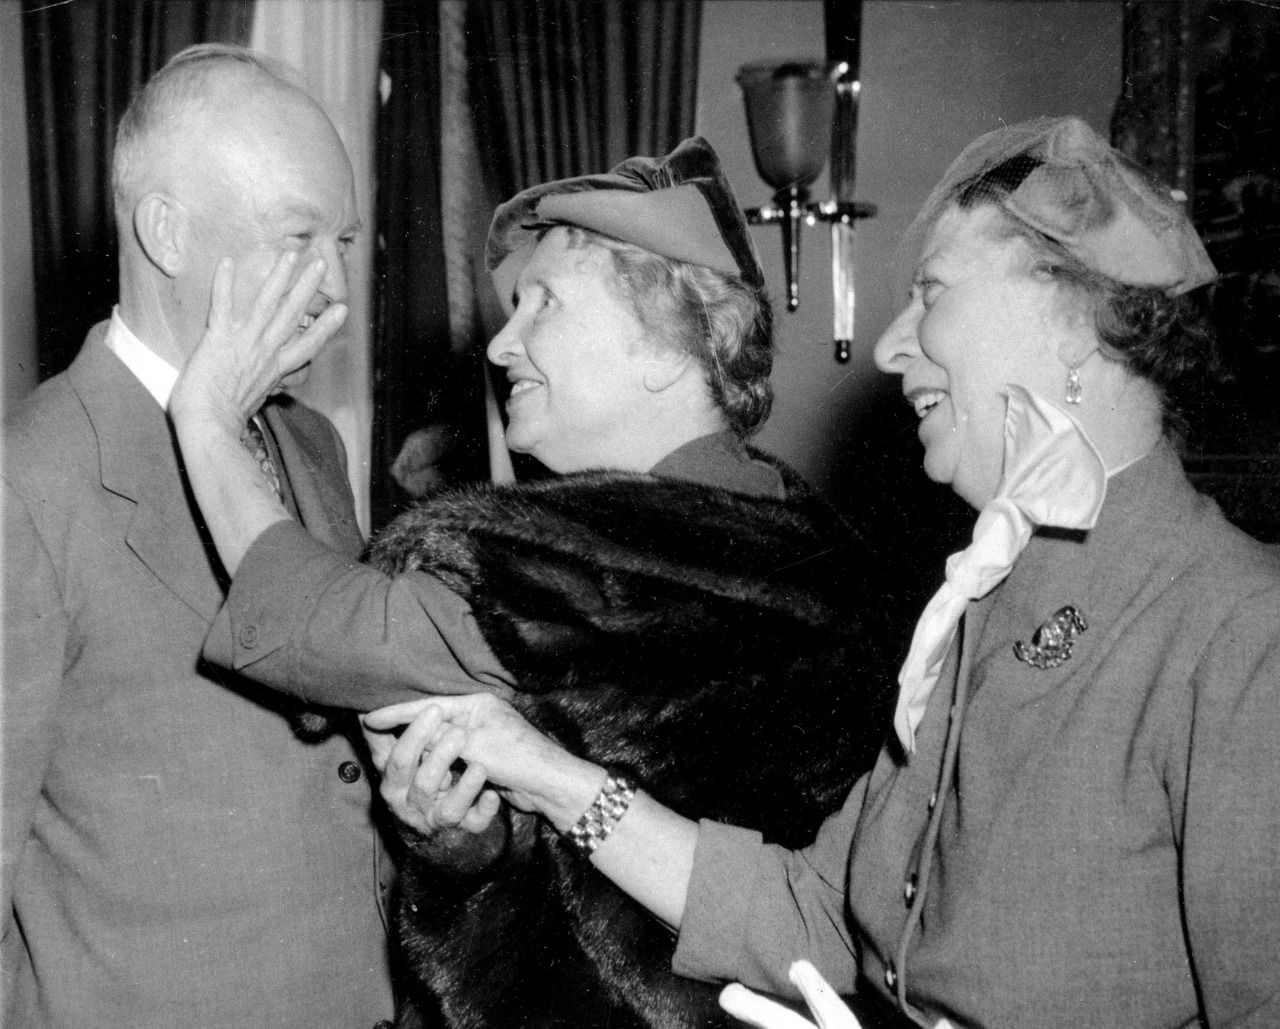 Helen Keller, 73, who is blind and deaf, guides her hand over U.S. President Dwight Eisenhower's face as her companion Polly Thomson communicates the President's comments by sign language on Keller's palm, November 3, 1953 ""